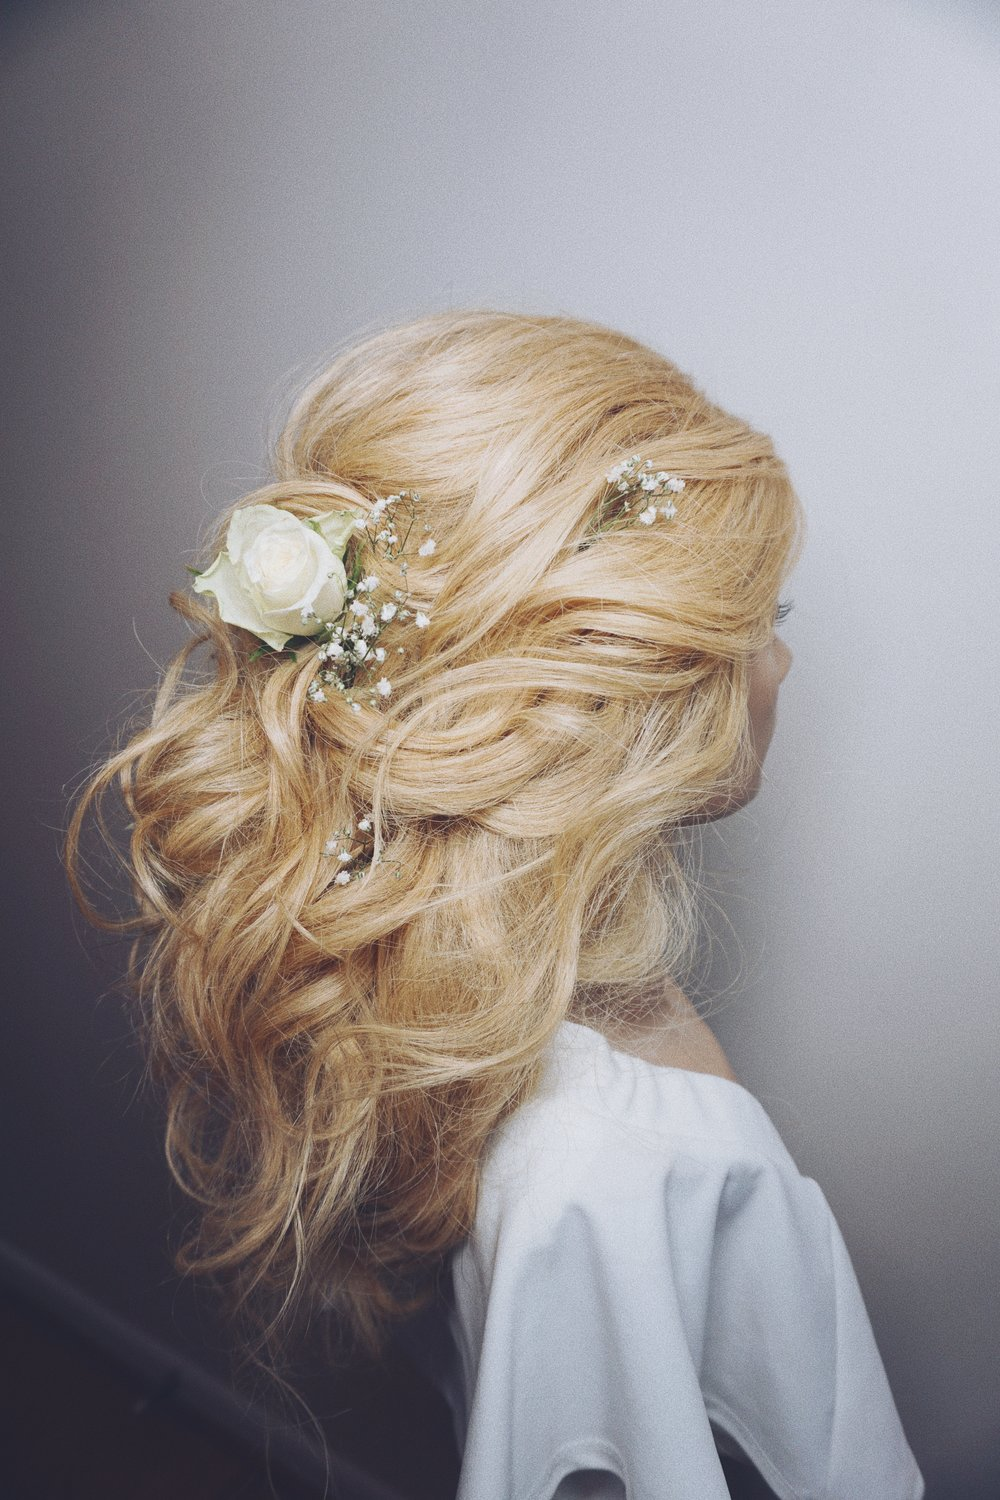 hair accessories for wedding hairstyle ideas half up half down